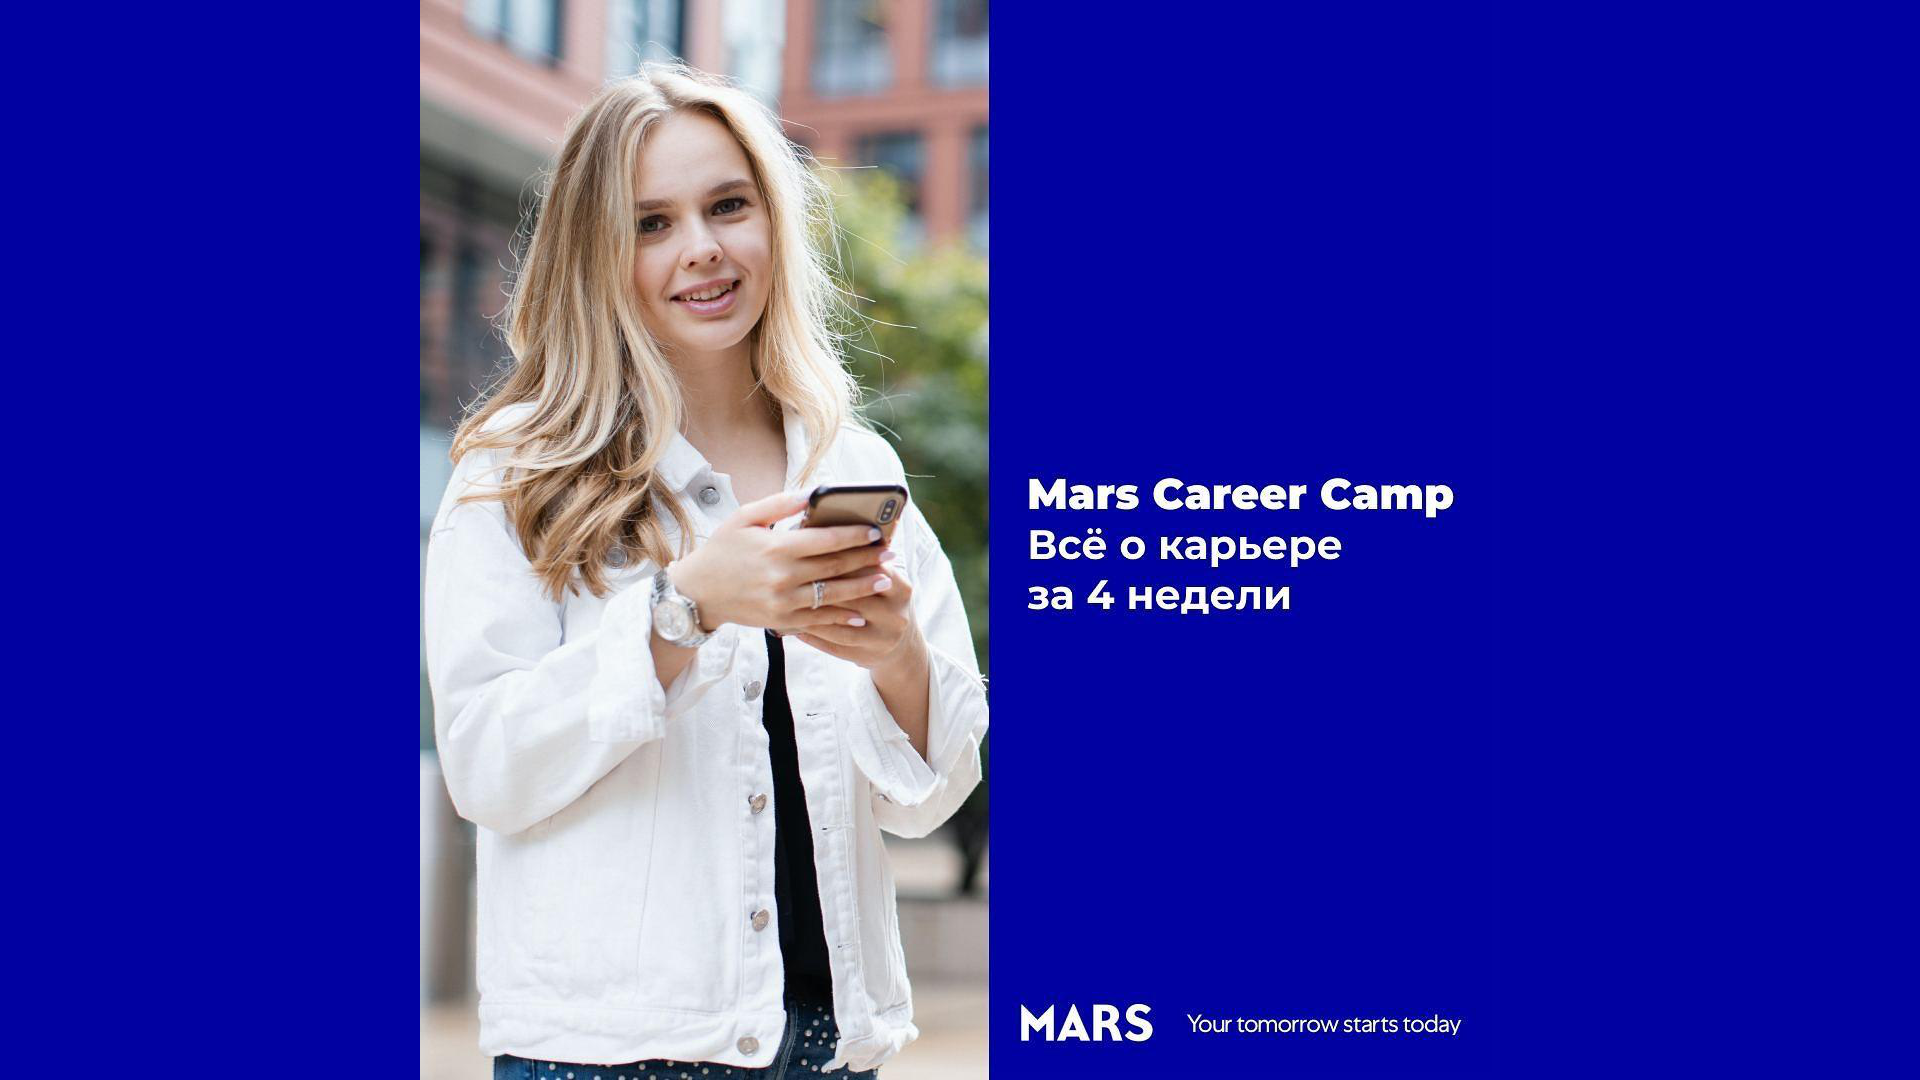 Mars Career Camp